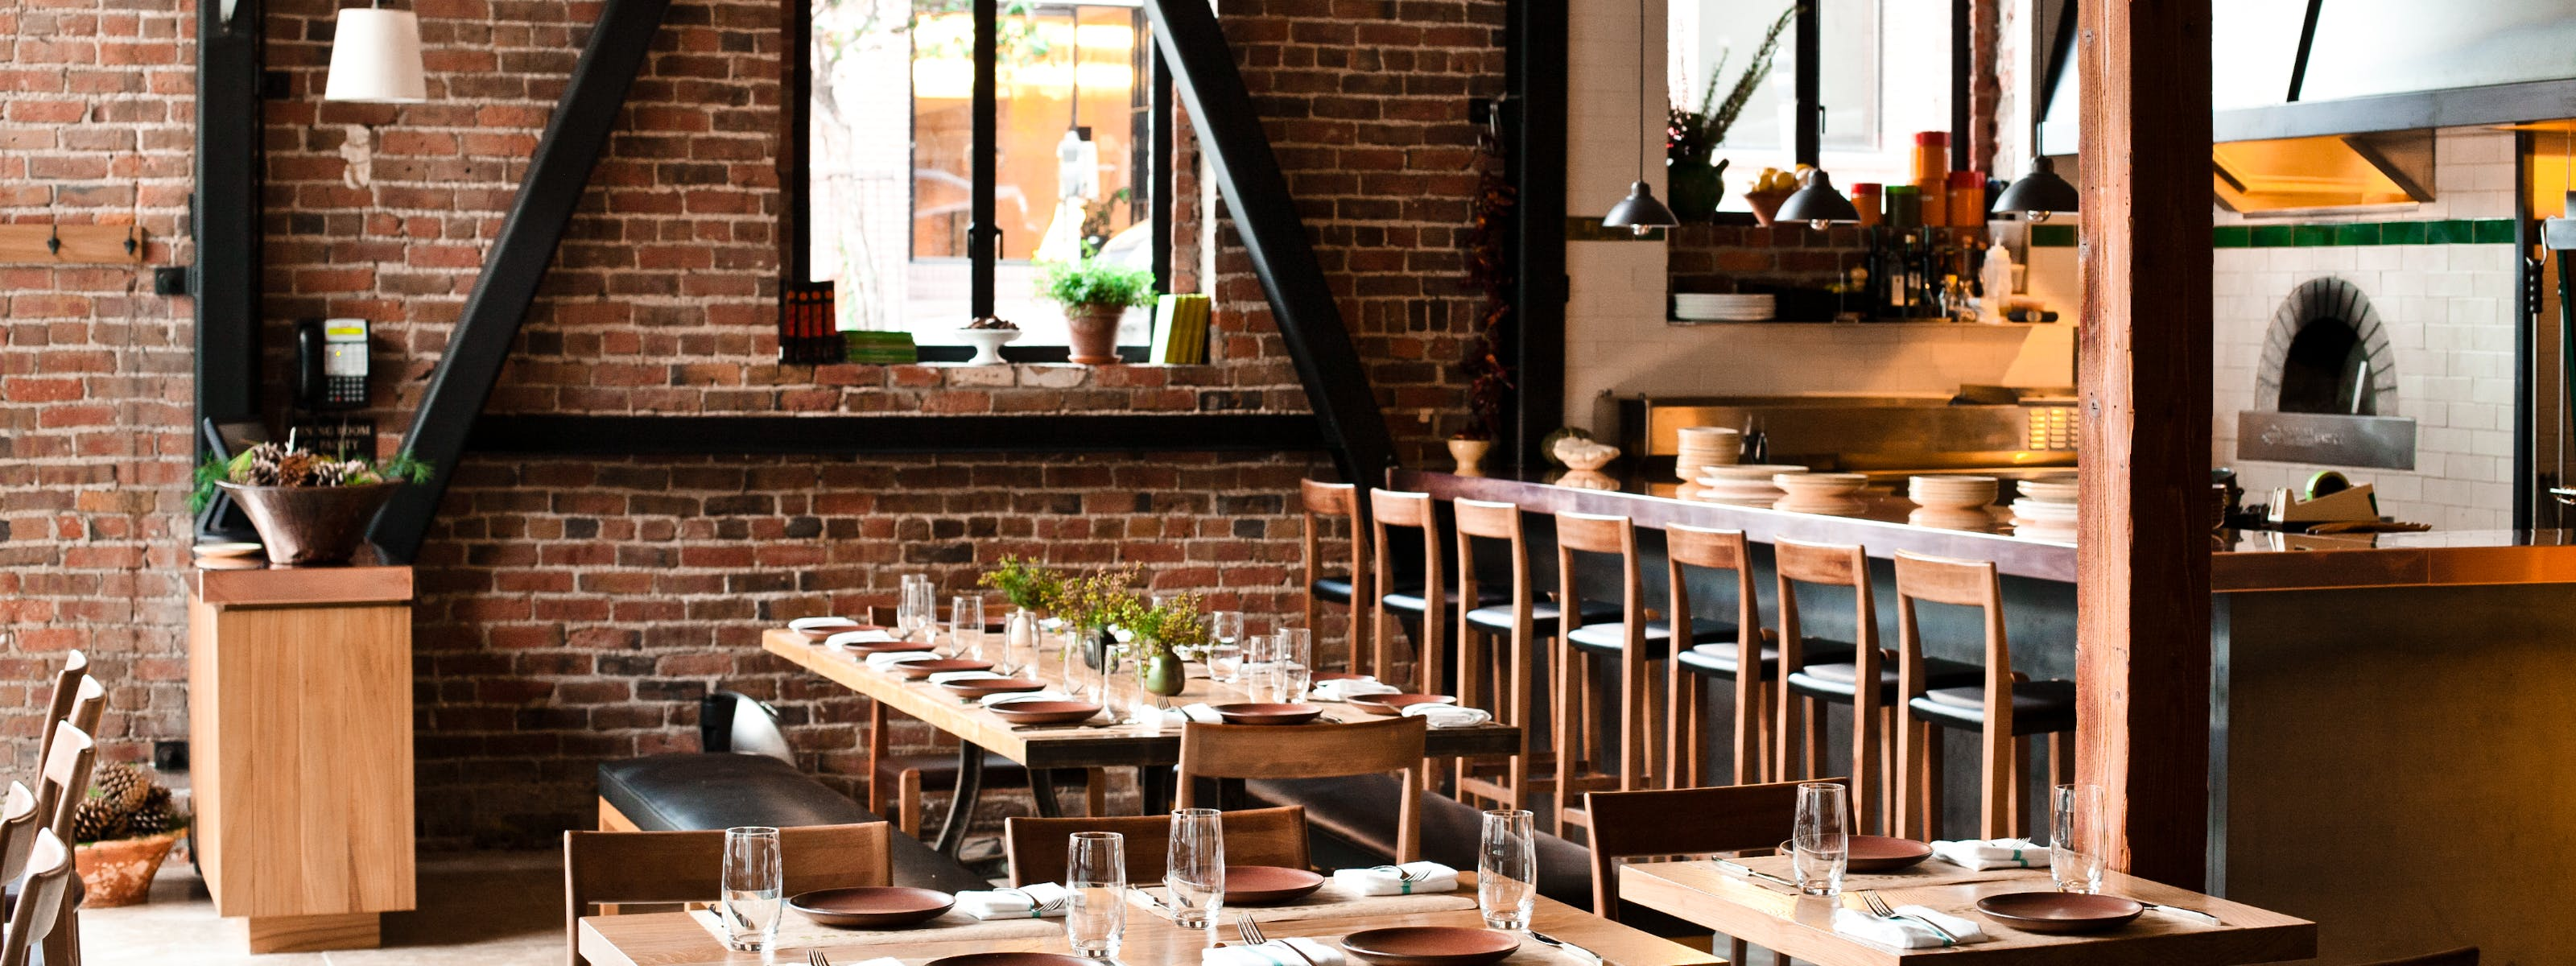 Where To Get Some Pasta And A Glass Of Wine By Yourself - San Francisco - The Infatuation